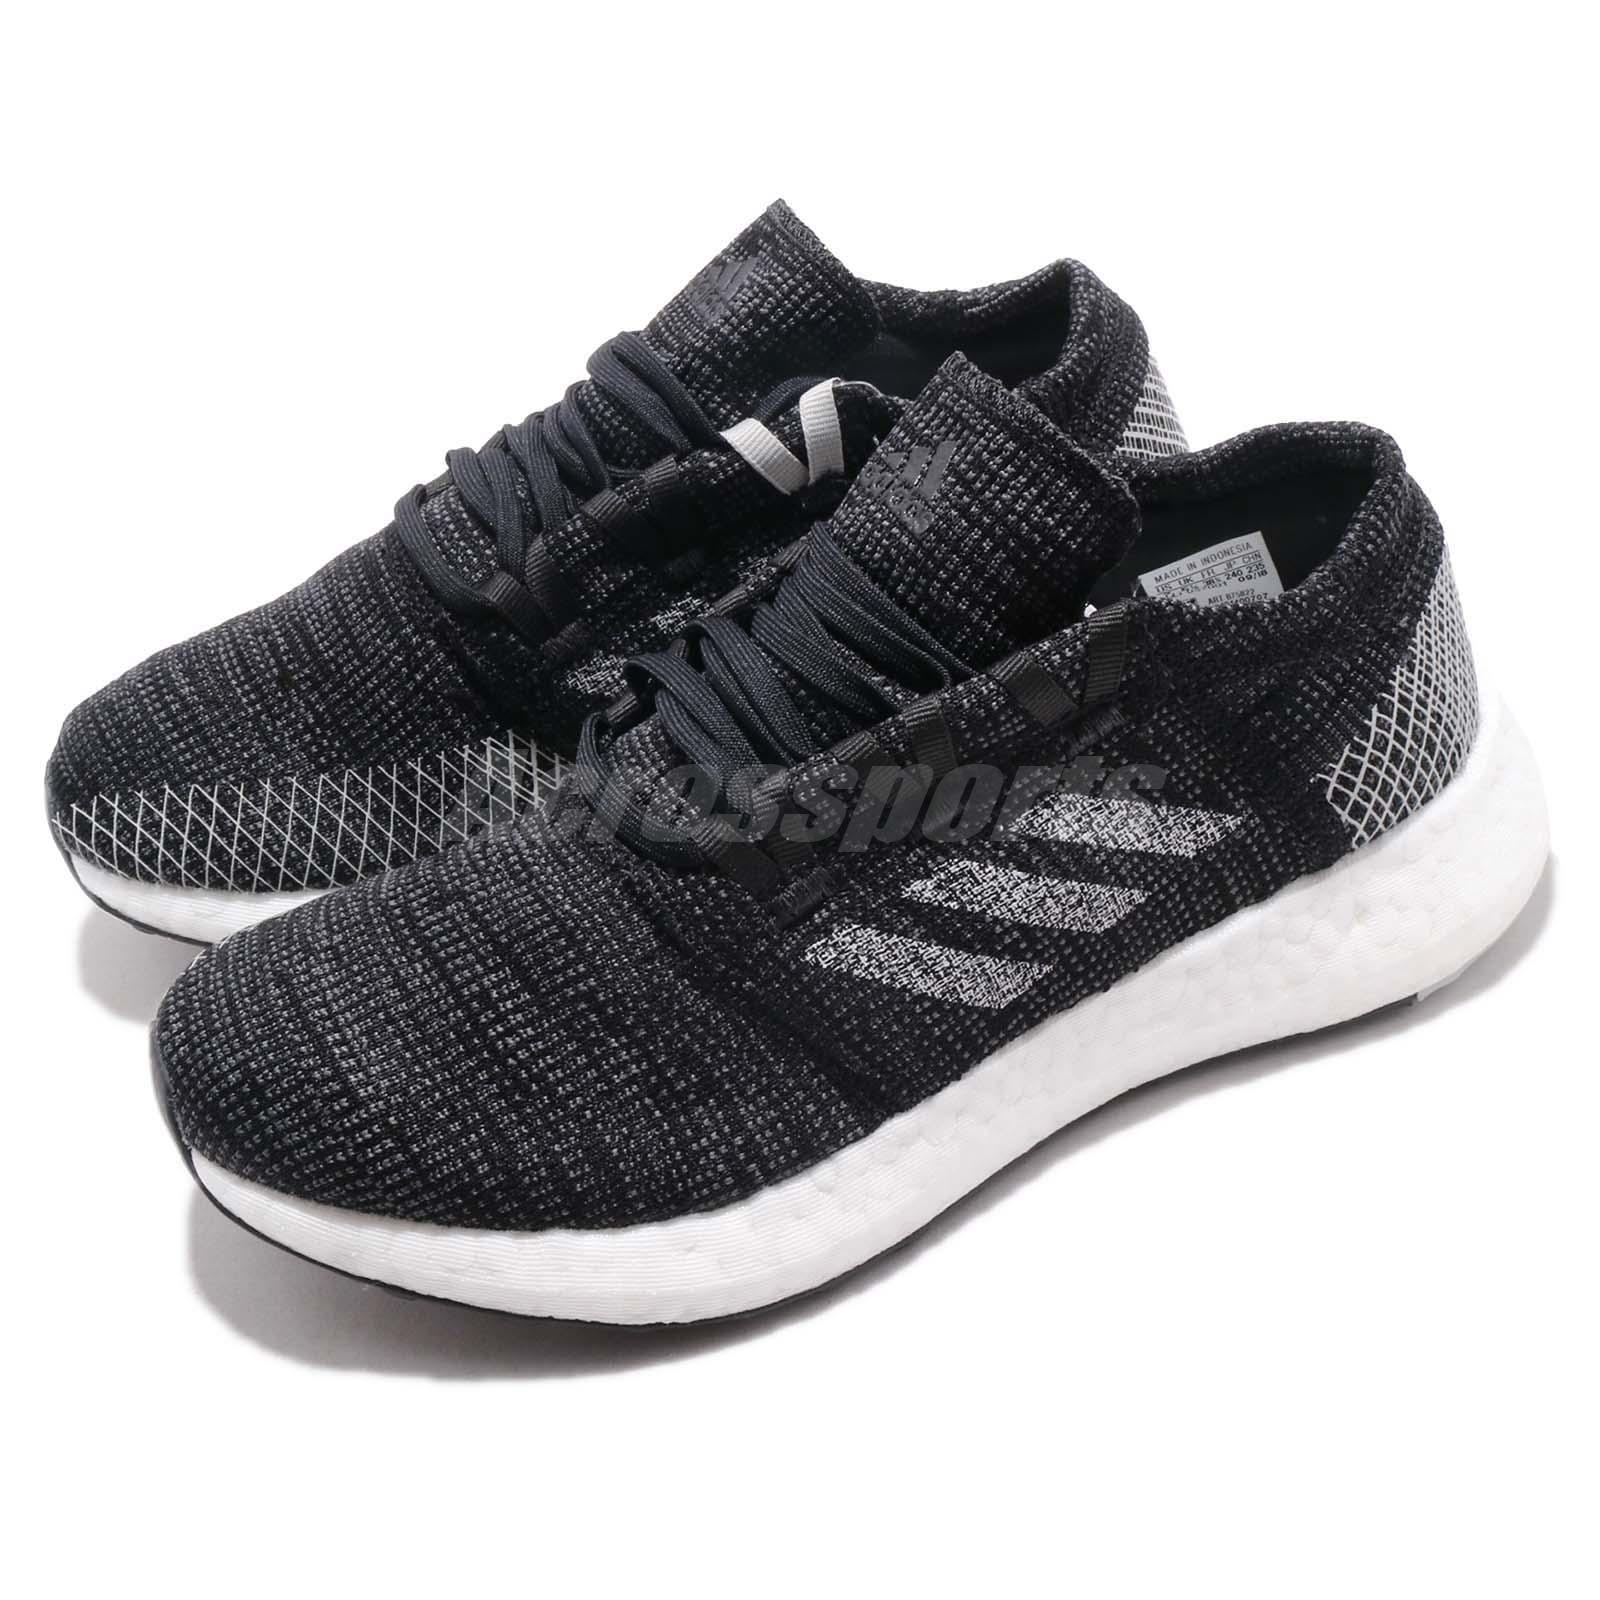 2c6d7d5db3fb36 Details about adidas PureBOOST Go W Black Grey White Women Running Shoes  Sneakers B75822